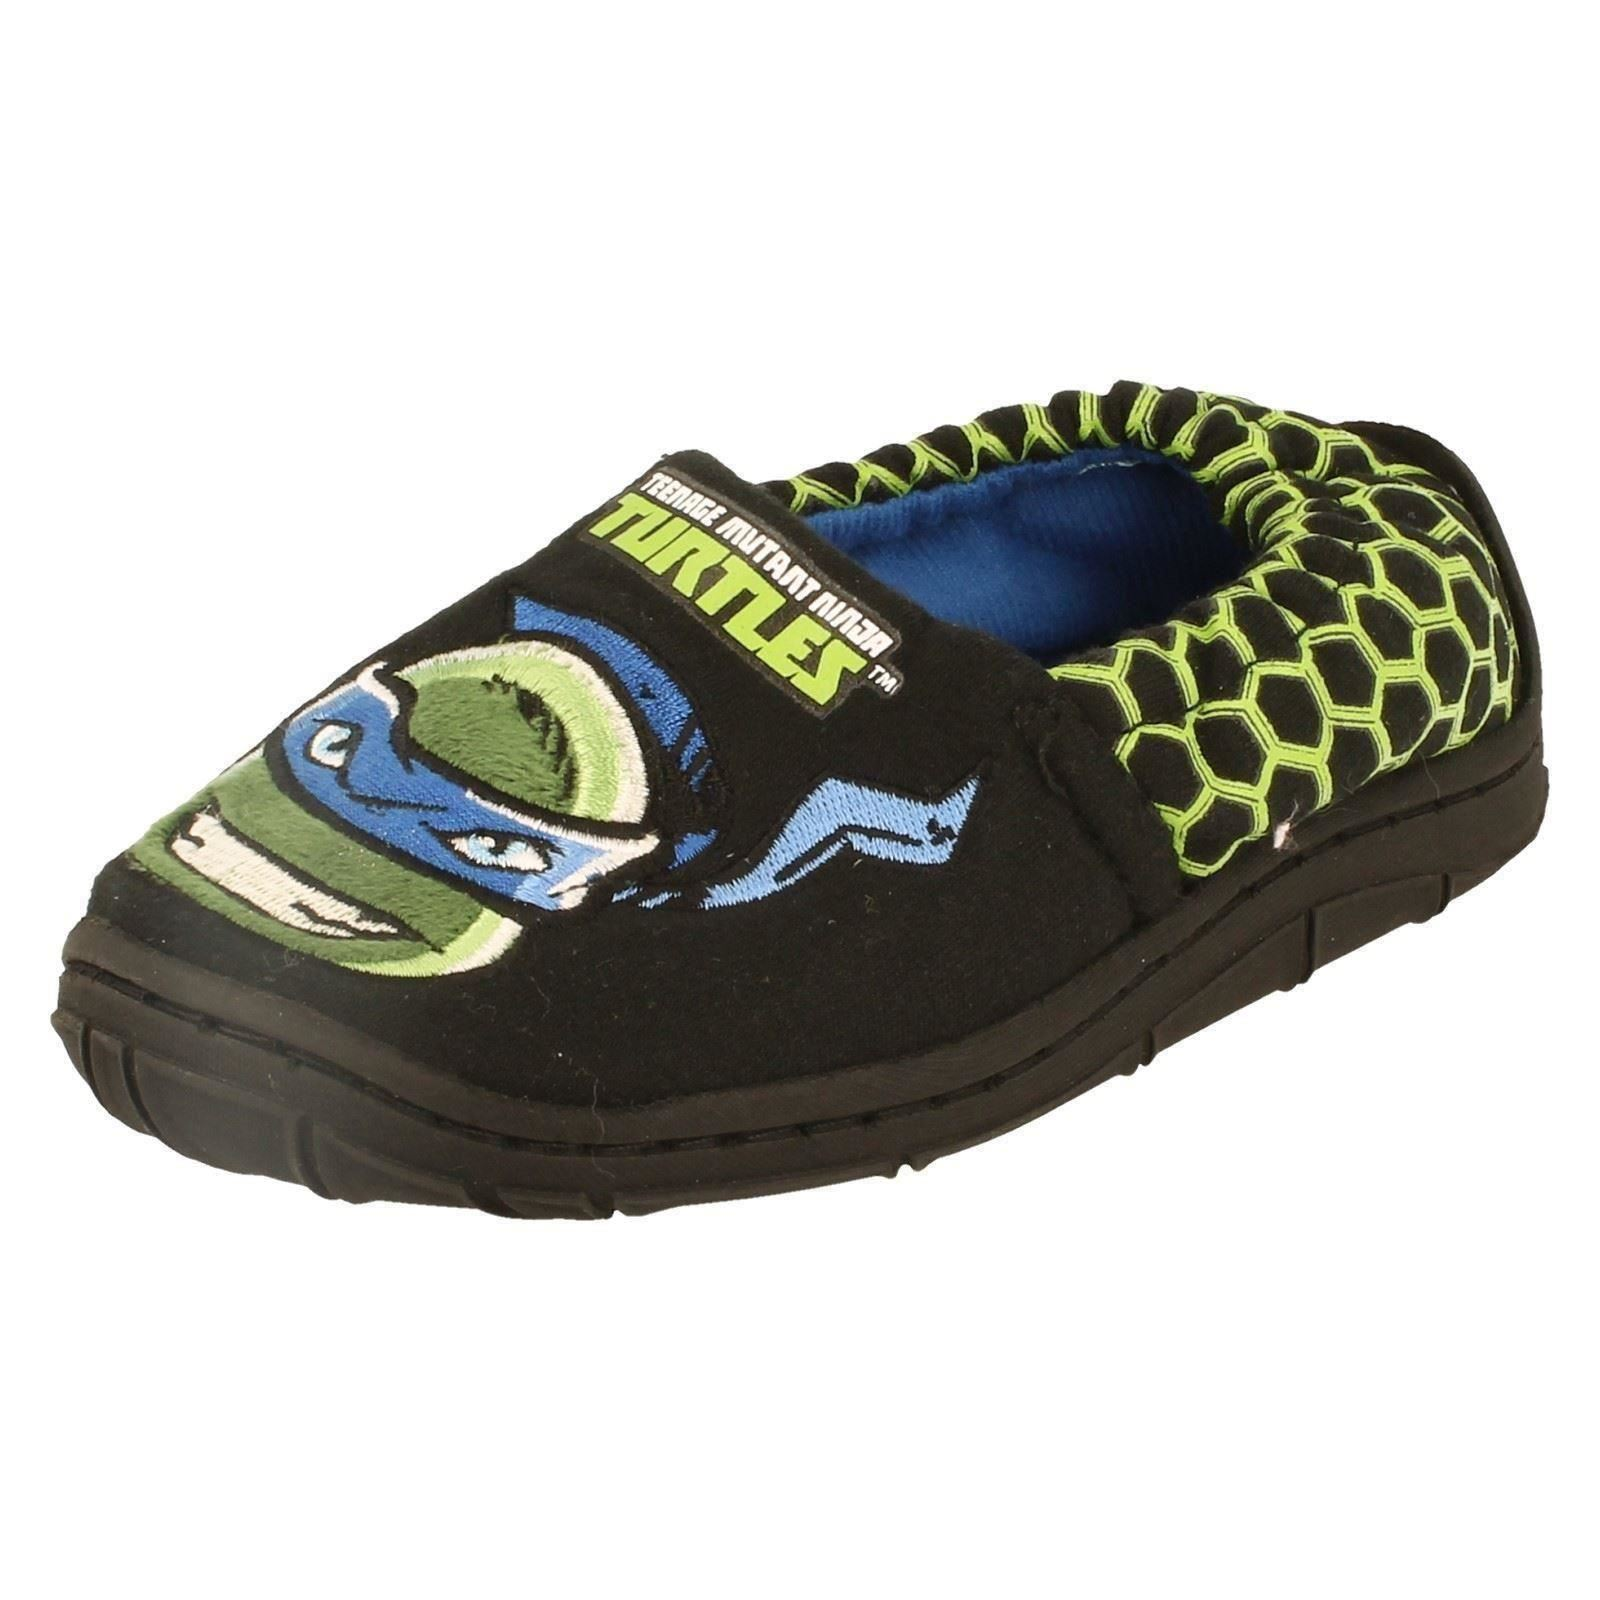 Para Niños Chicos Teenage Mutant Ninja Turtles Etiqueta slippers-w